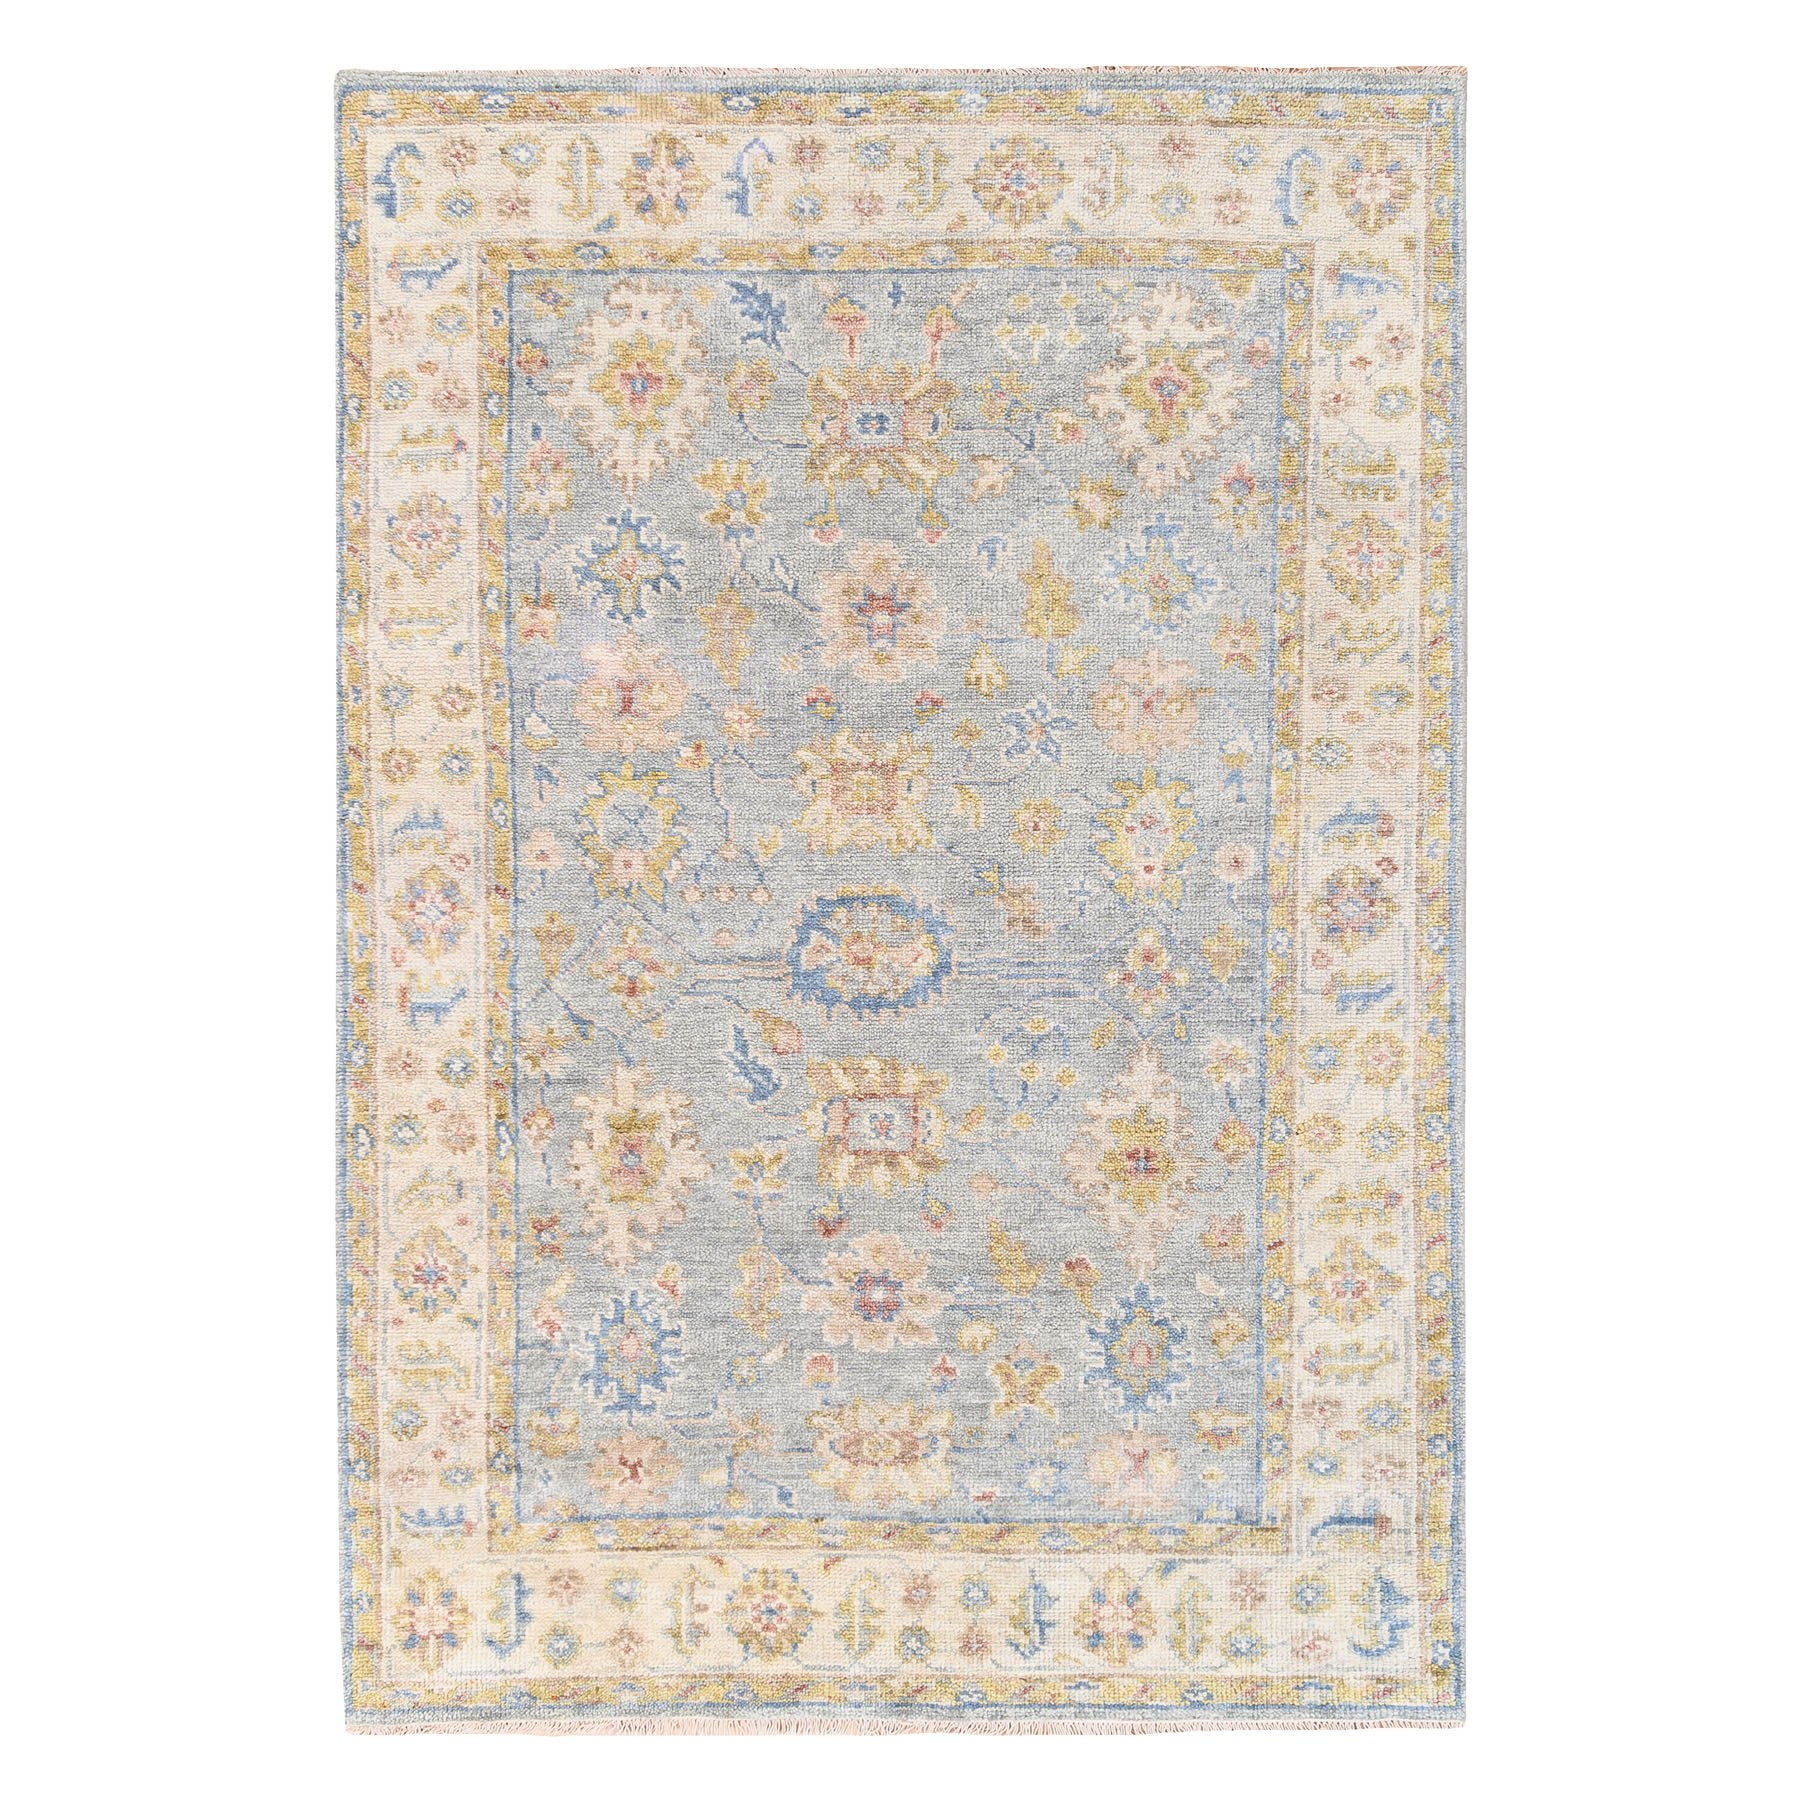 "6'x8'9"" Gray Natural Wool Supple Collection Oushak Design Hand Knotted Oriental Rug"